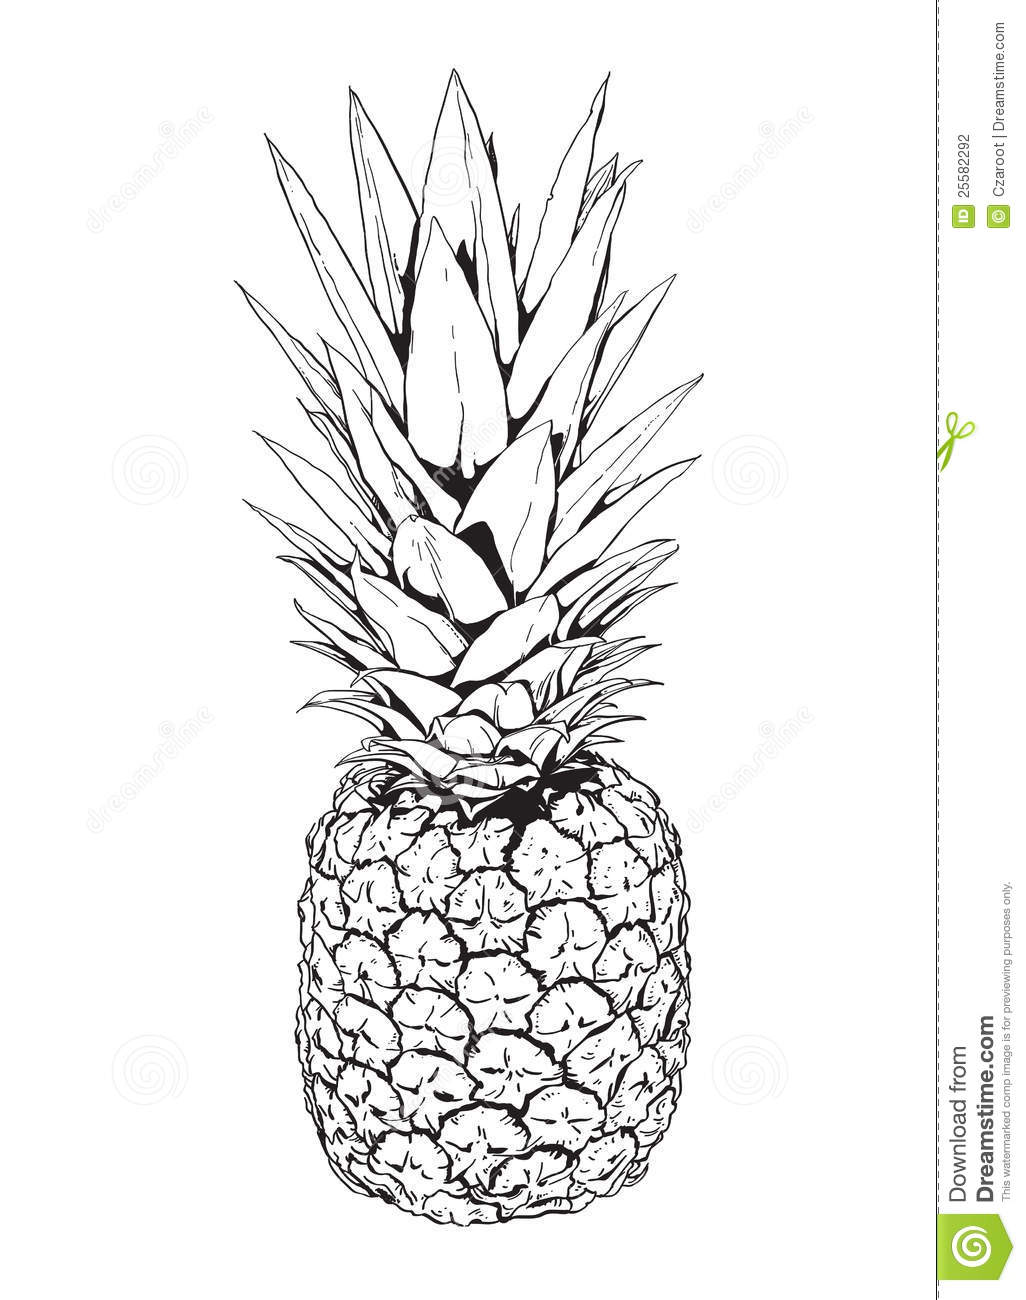 Ananas photographie stock image 25582292 - Dessin d un ananas ...